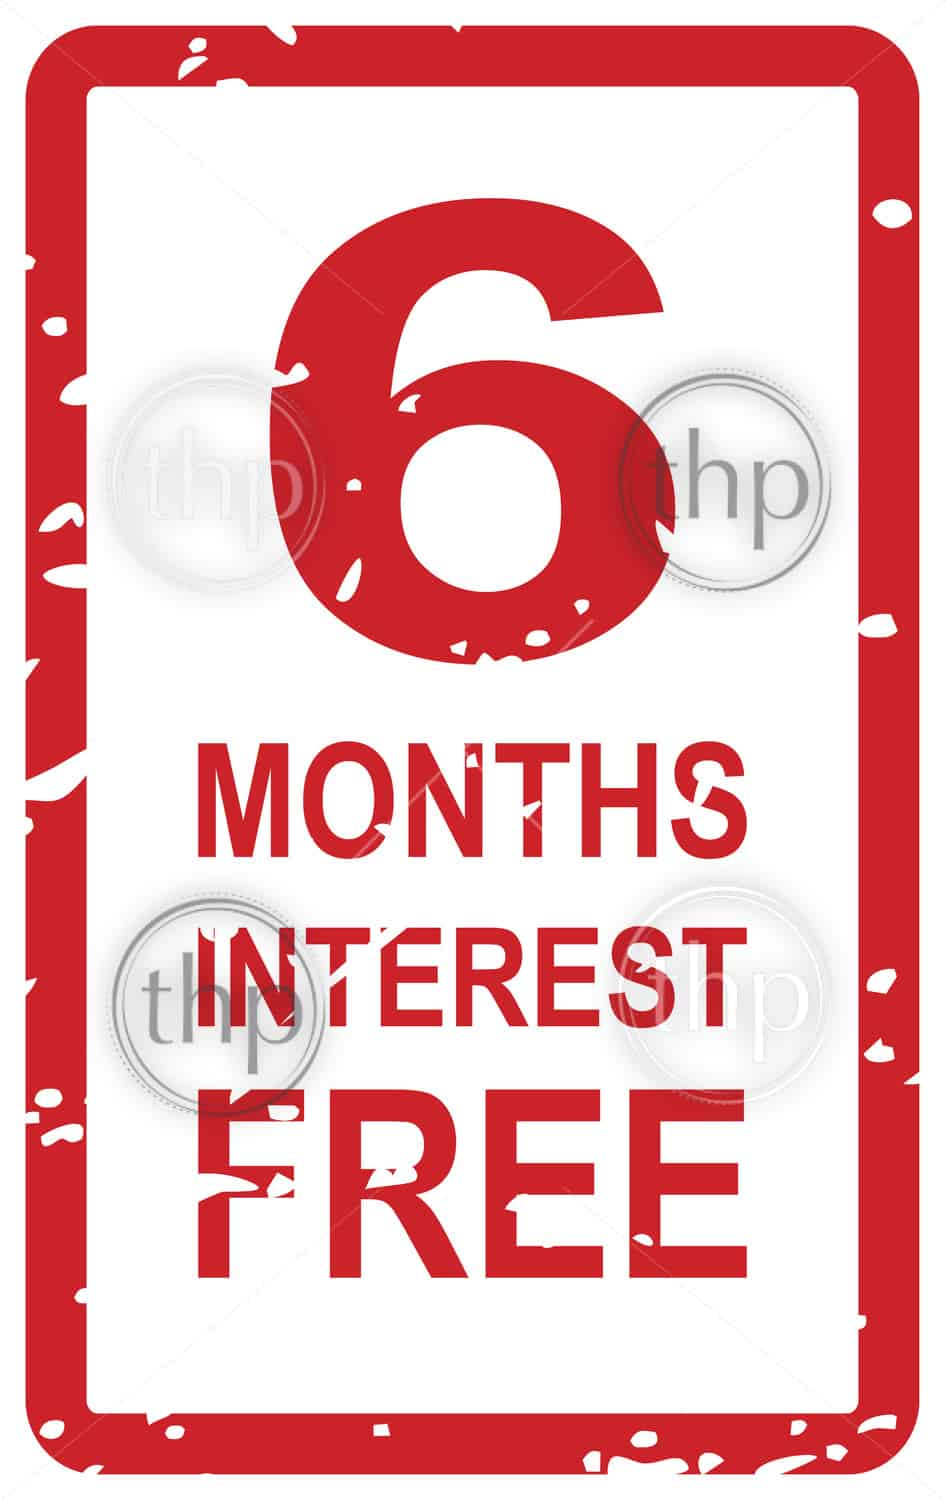 Red rubber stamp vector for 6 months interest free business concept